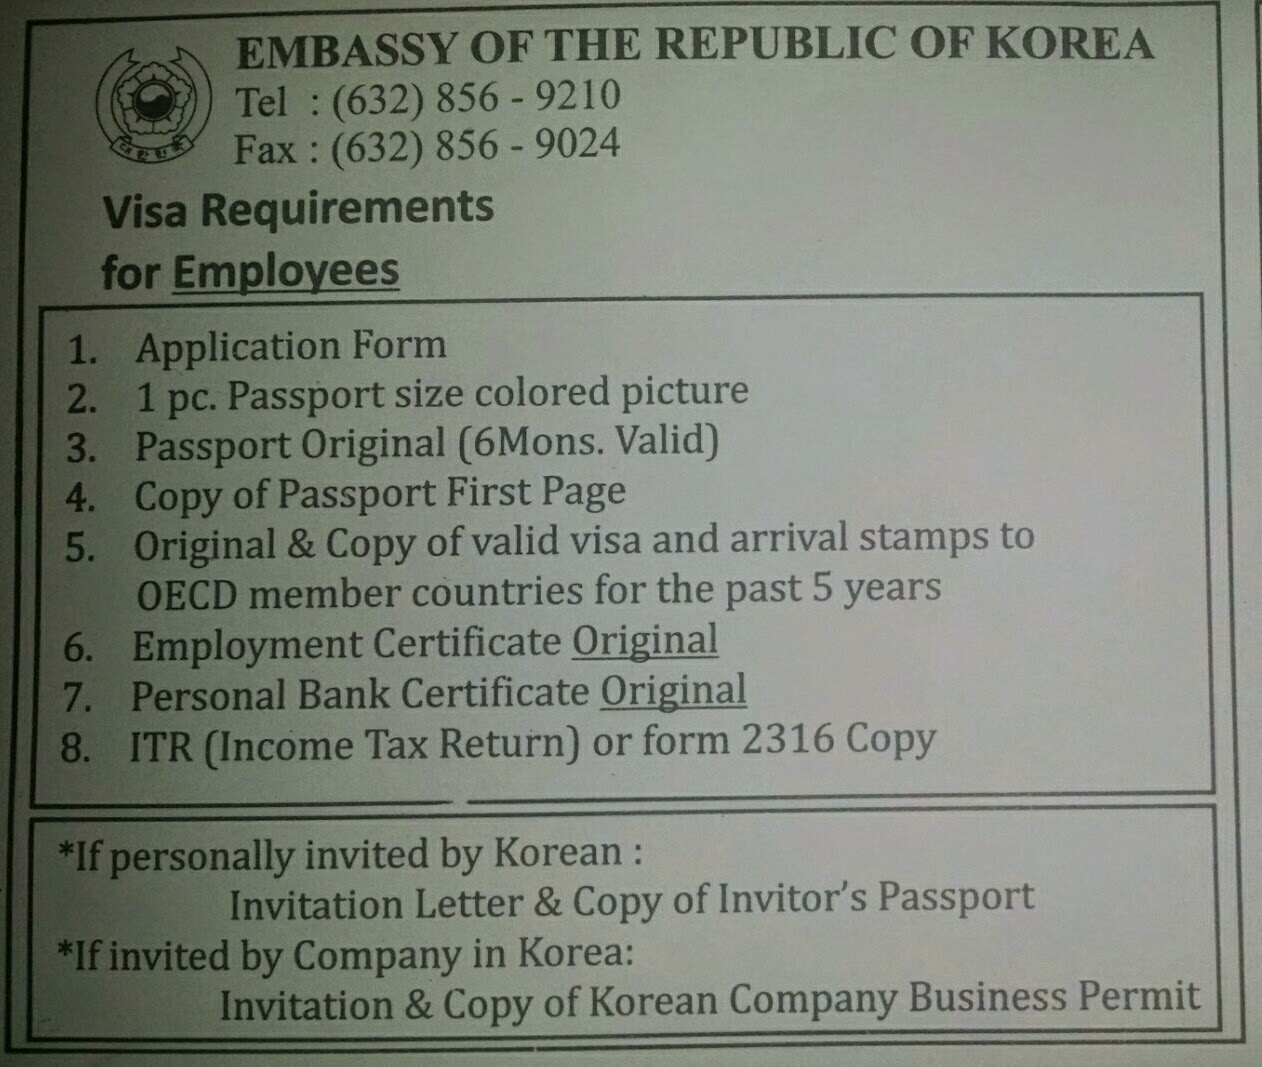 invitation letter for visapplication business sample%0A I got this leaflet from the embassy  Note that these are requirements for  employees